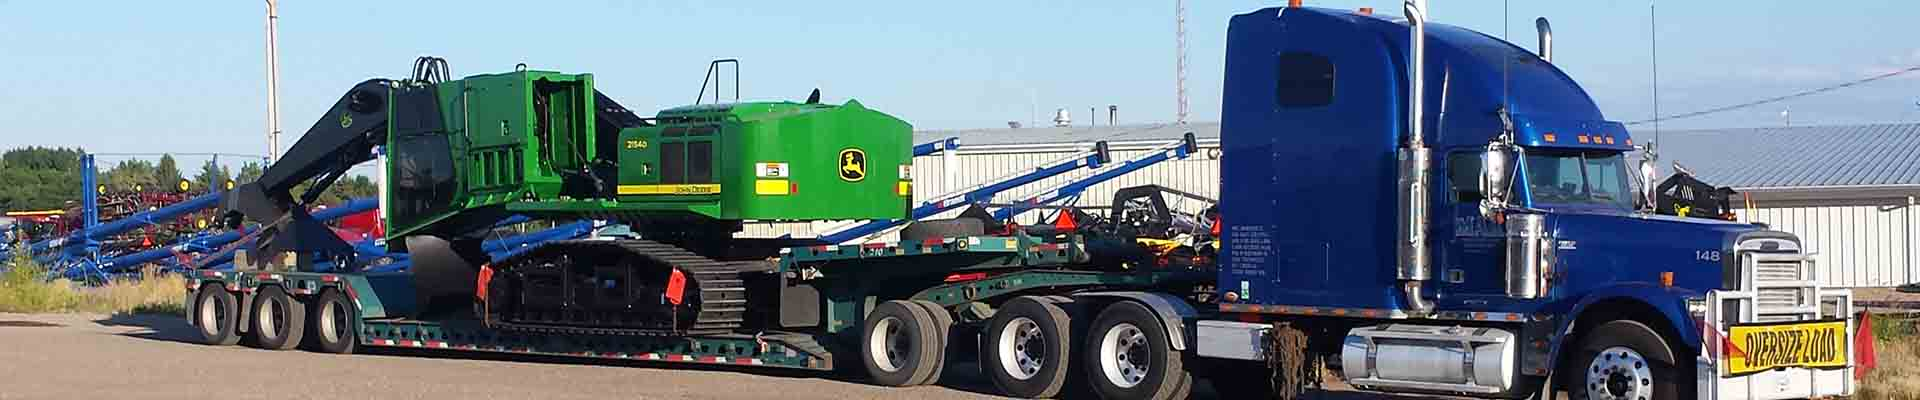 deere heavy equipment trucking canada